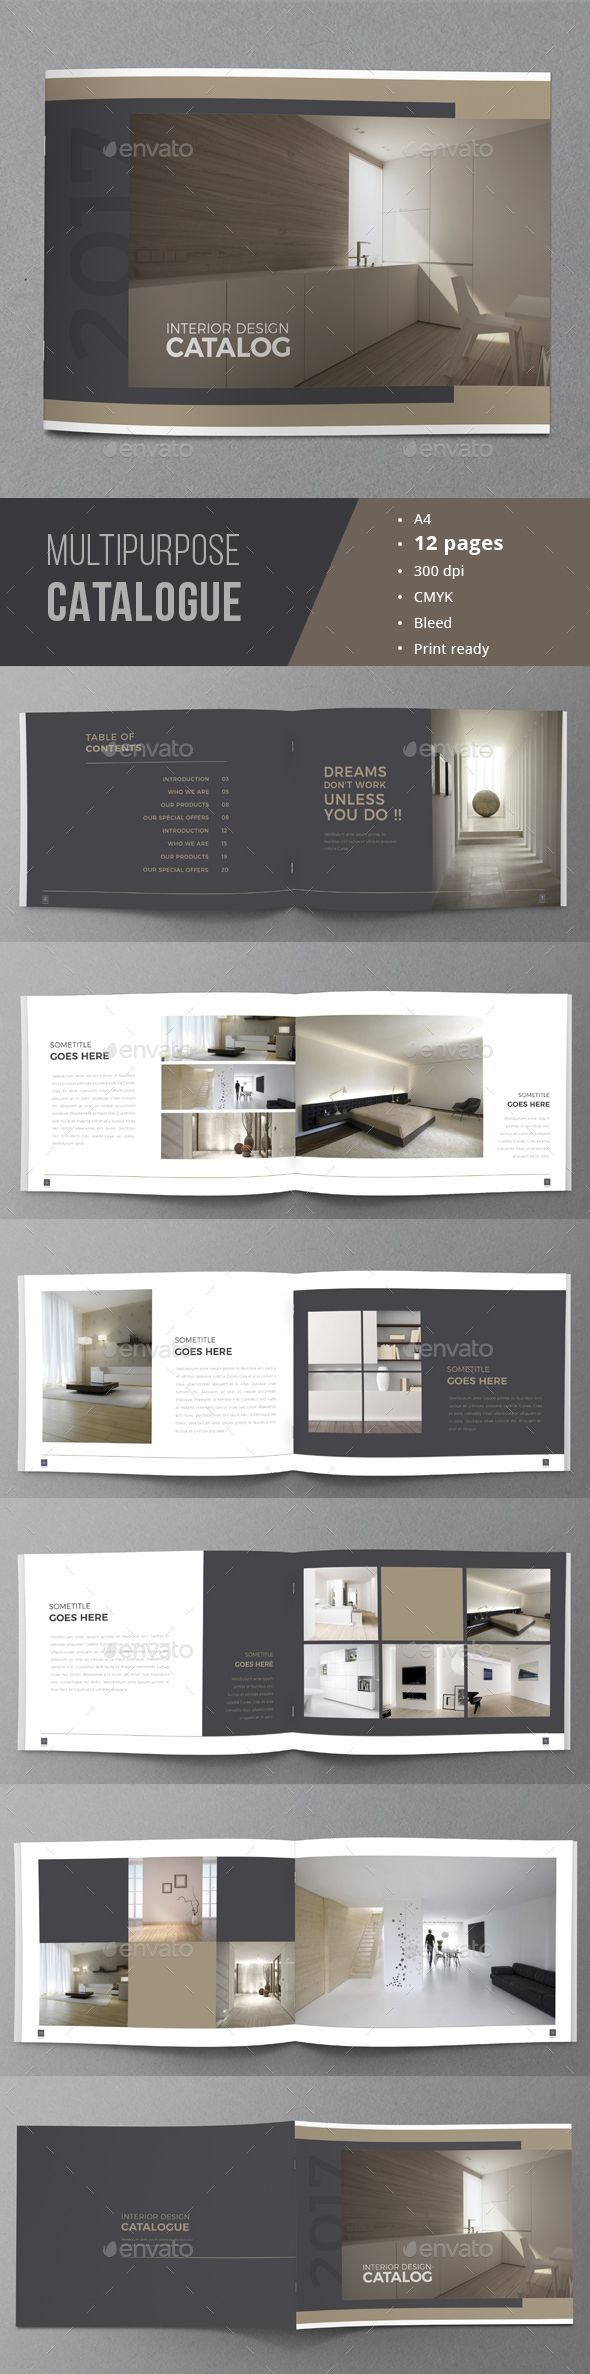 25 best ideas about product catalog design on pinterest for Free interior design catalogs